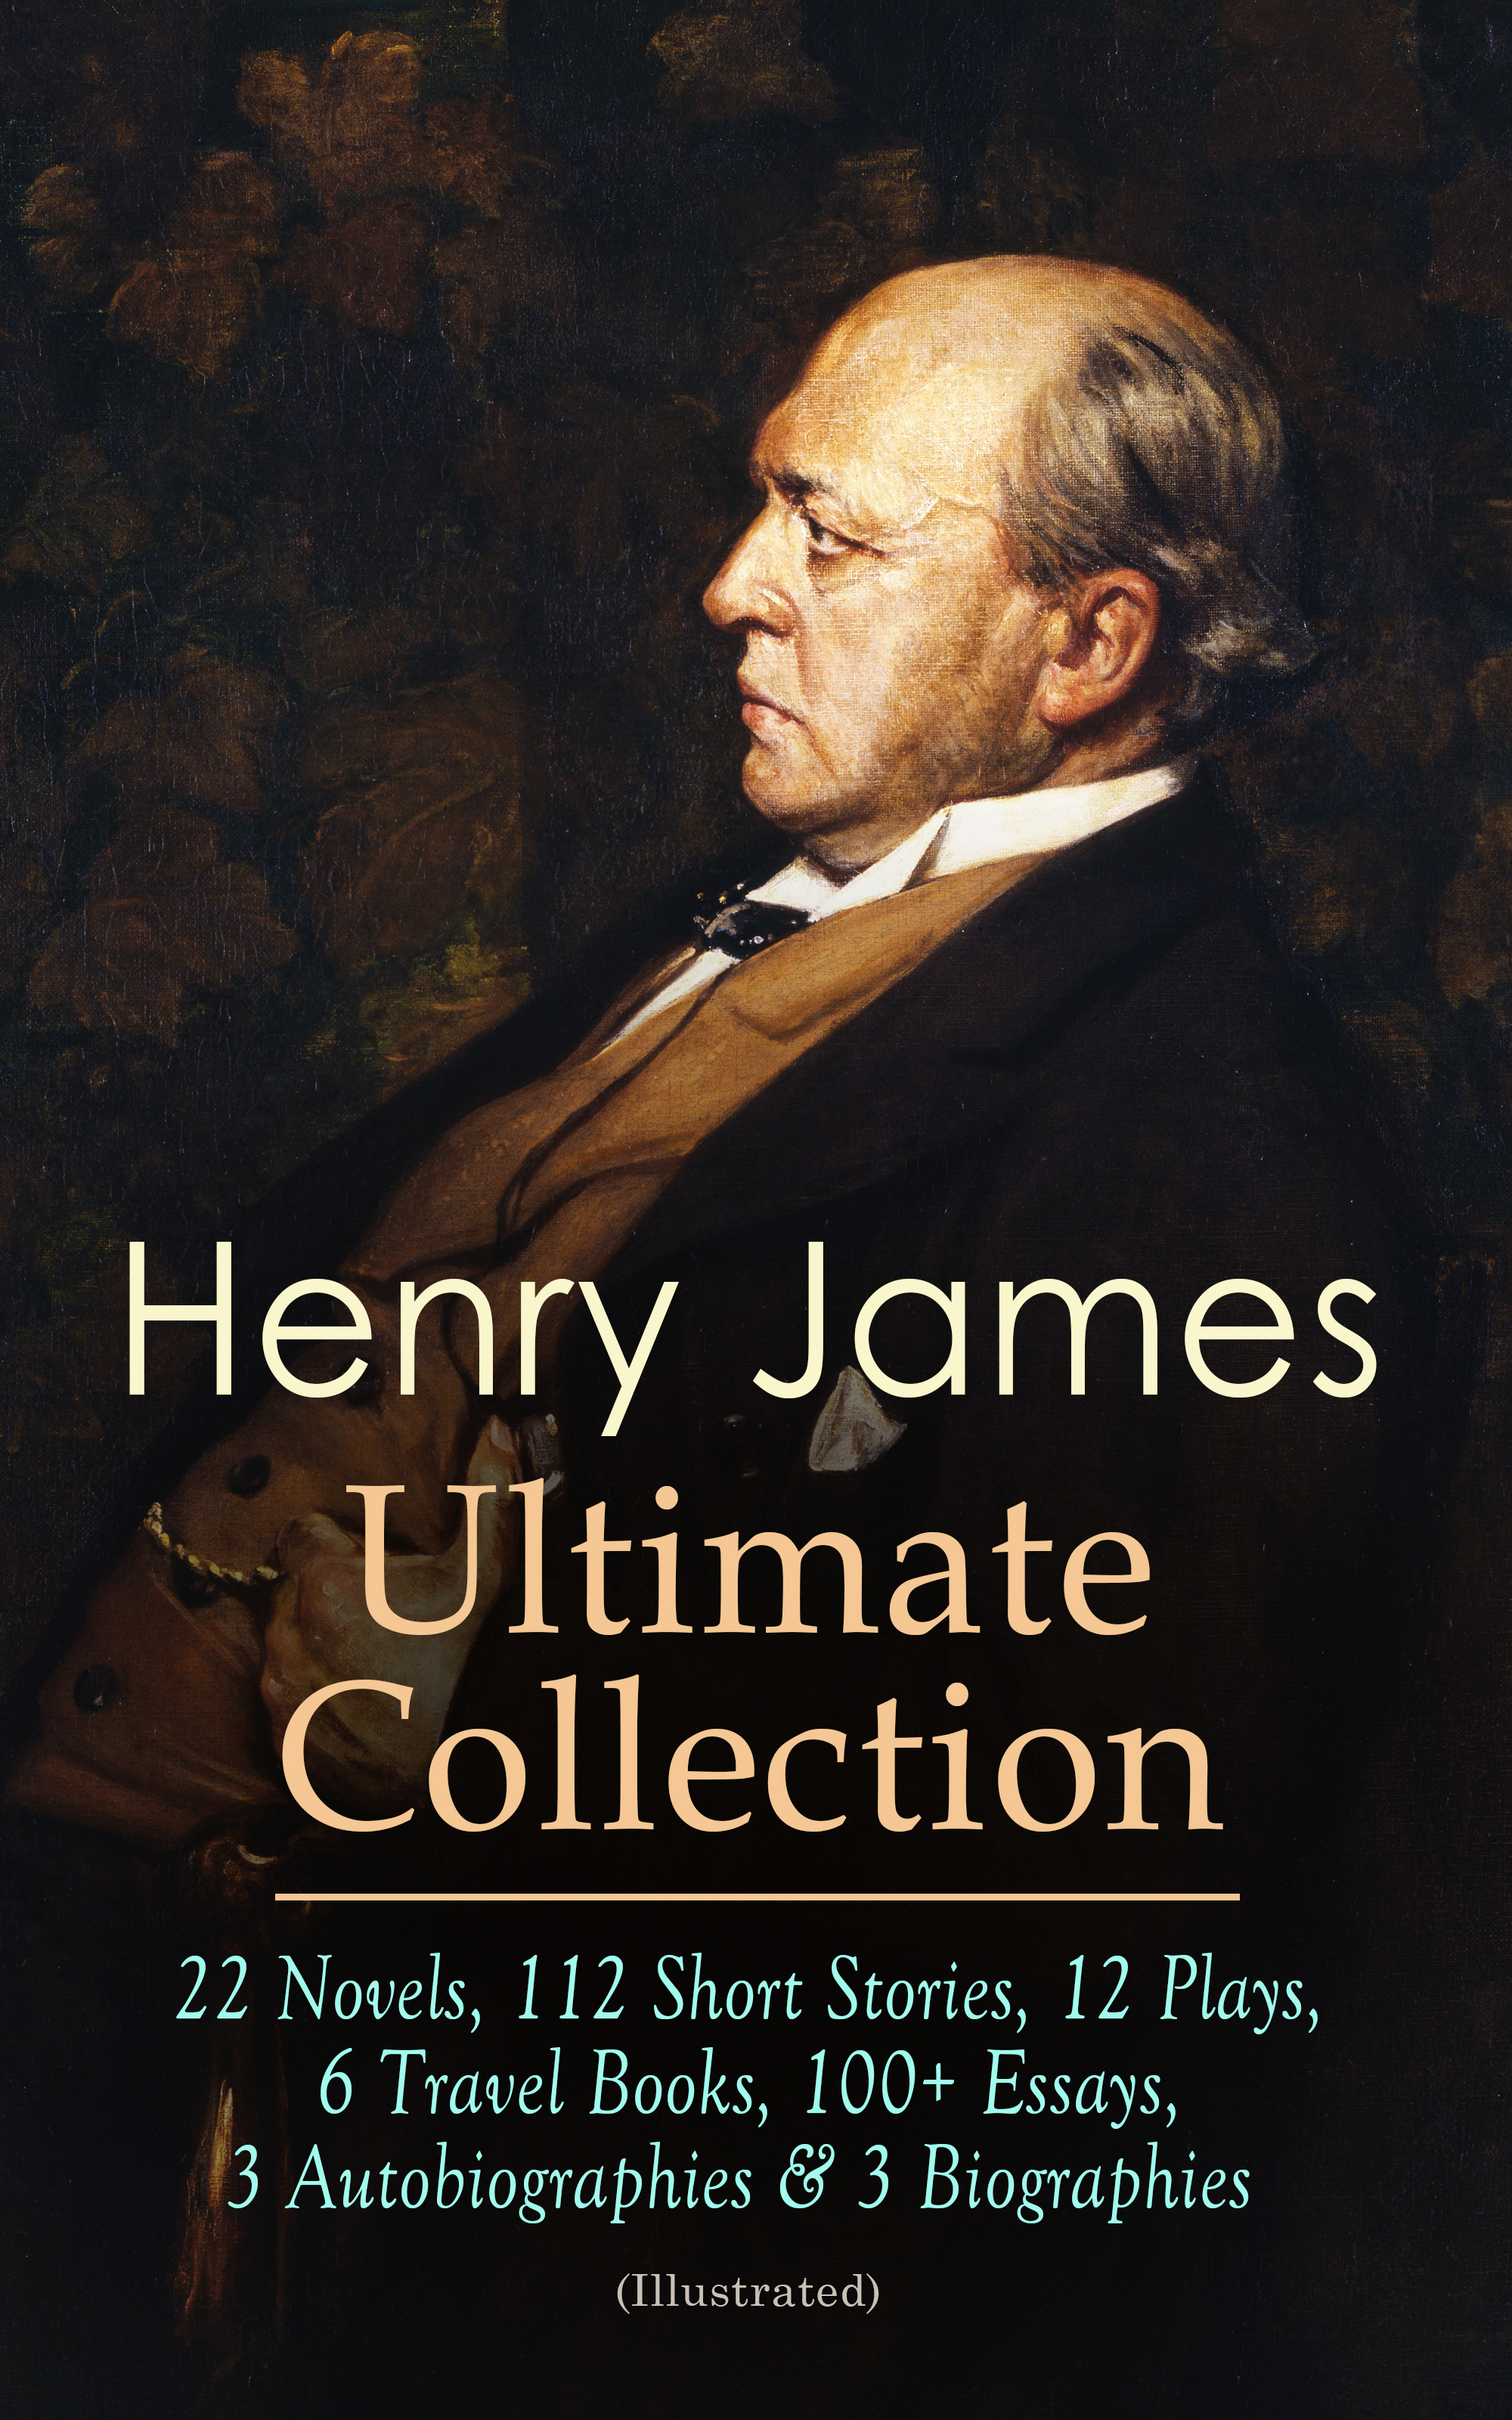 HENRY JAMES Ultimate Collection: 22 Novels, 112 Short Stories, 12 Plays, 6 Travel Books, 100+ Essays, 3 Autobiographies & 3 Biographies (Illustrated)